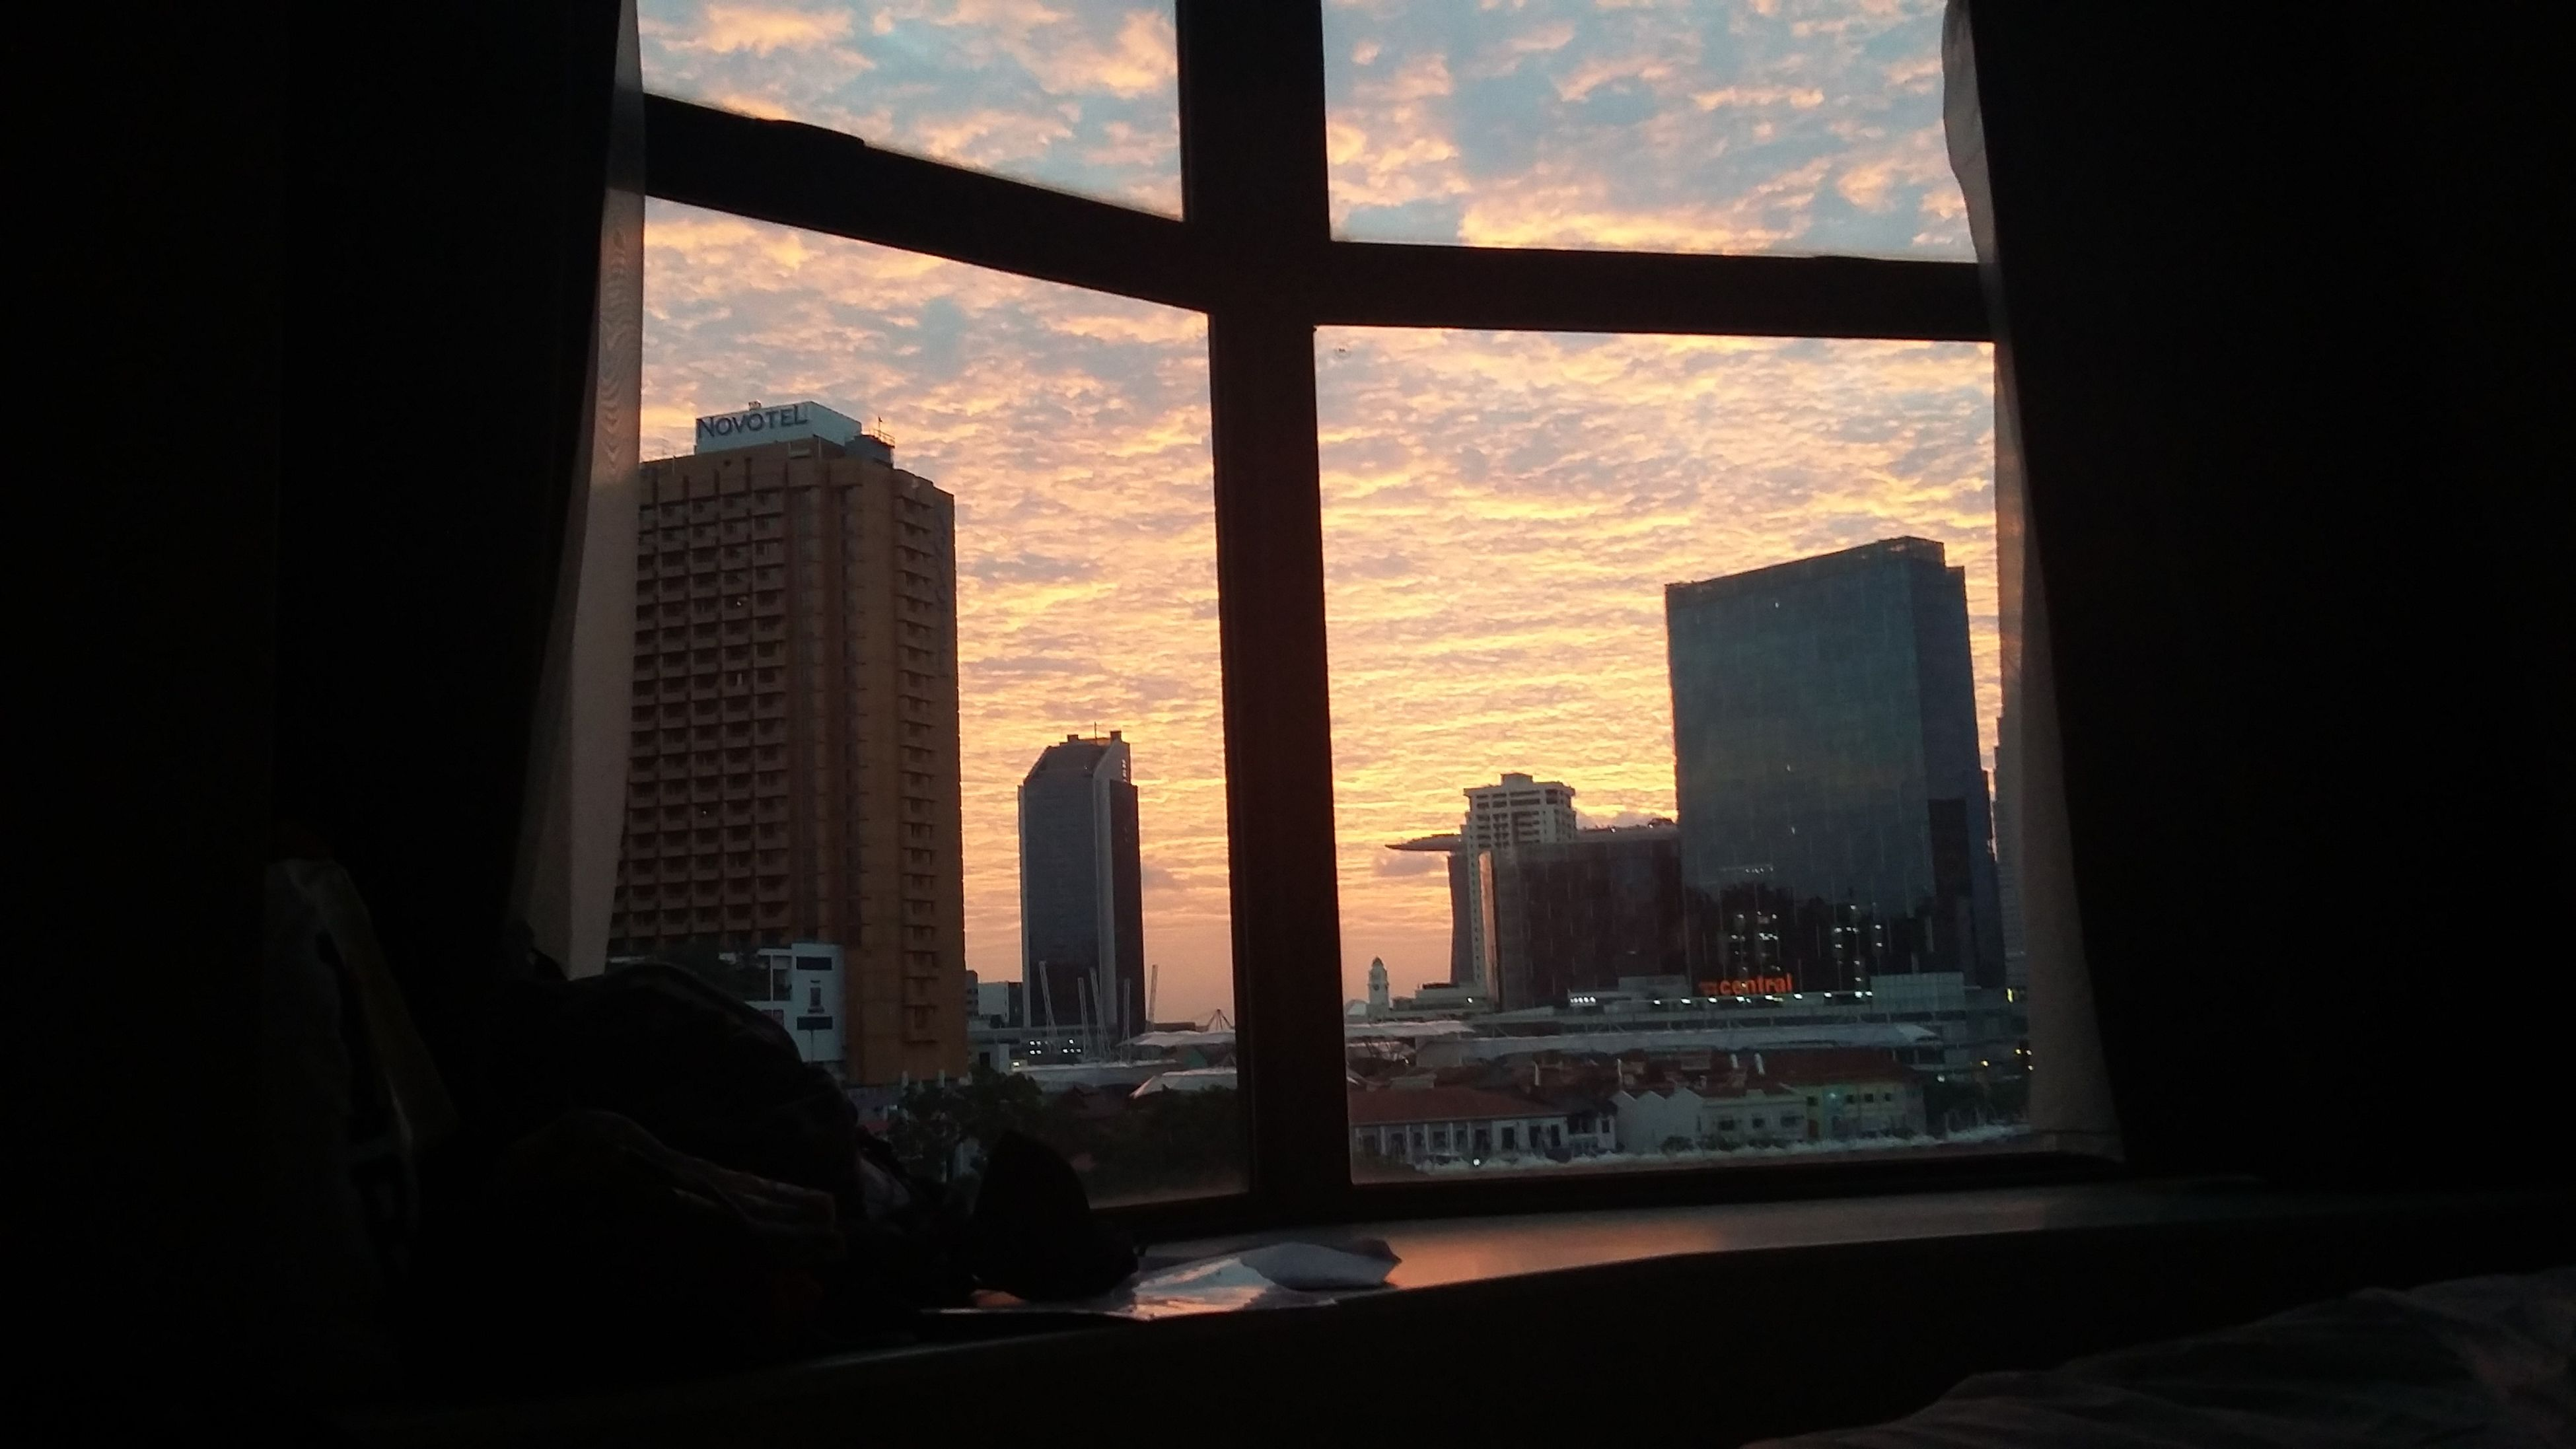 window, indoors, architecture, built structure, glass - material, building exterior, silhouette, city, sky, skyscraper, transparent, looking through window, modern, cityscape, office building, sunset, cloud - sky, sitting, dark, tower